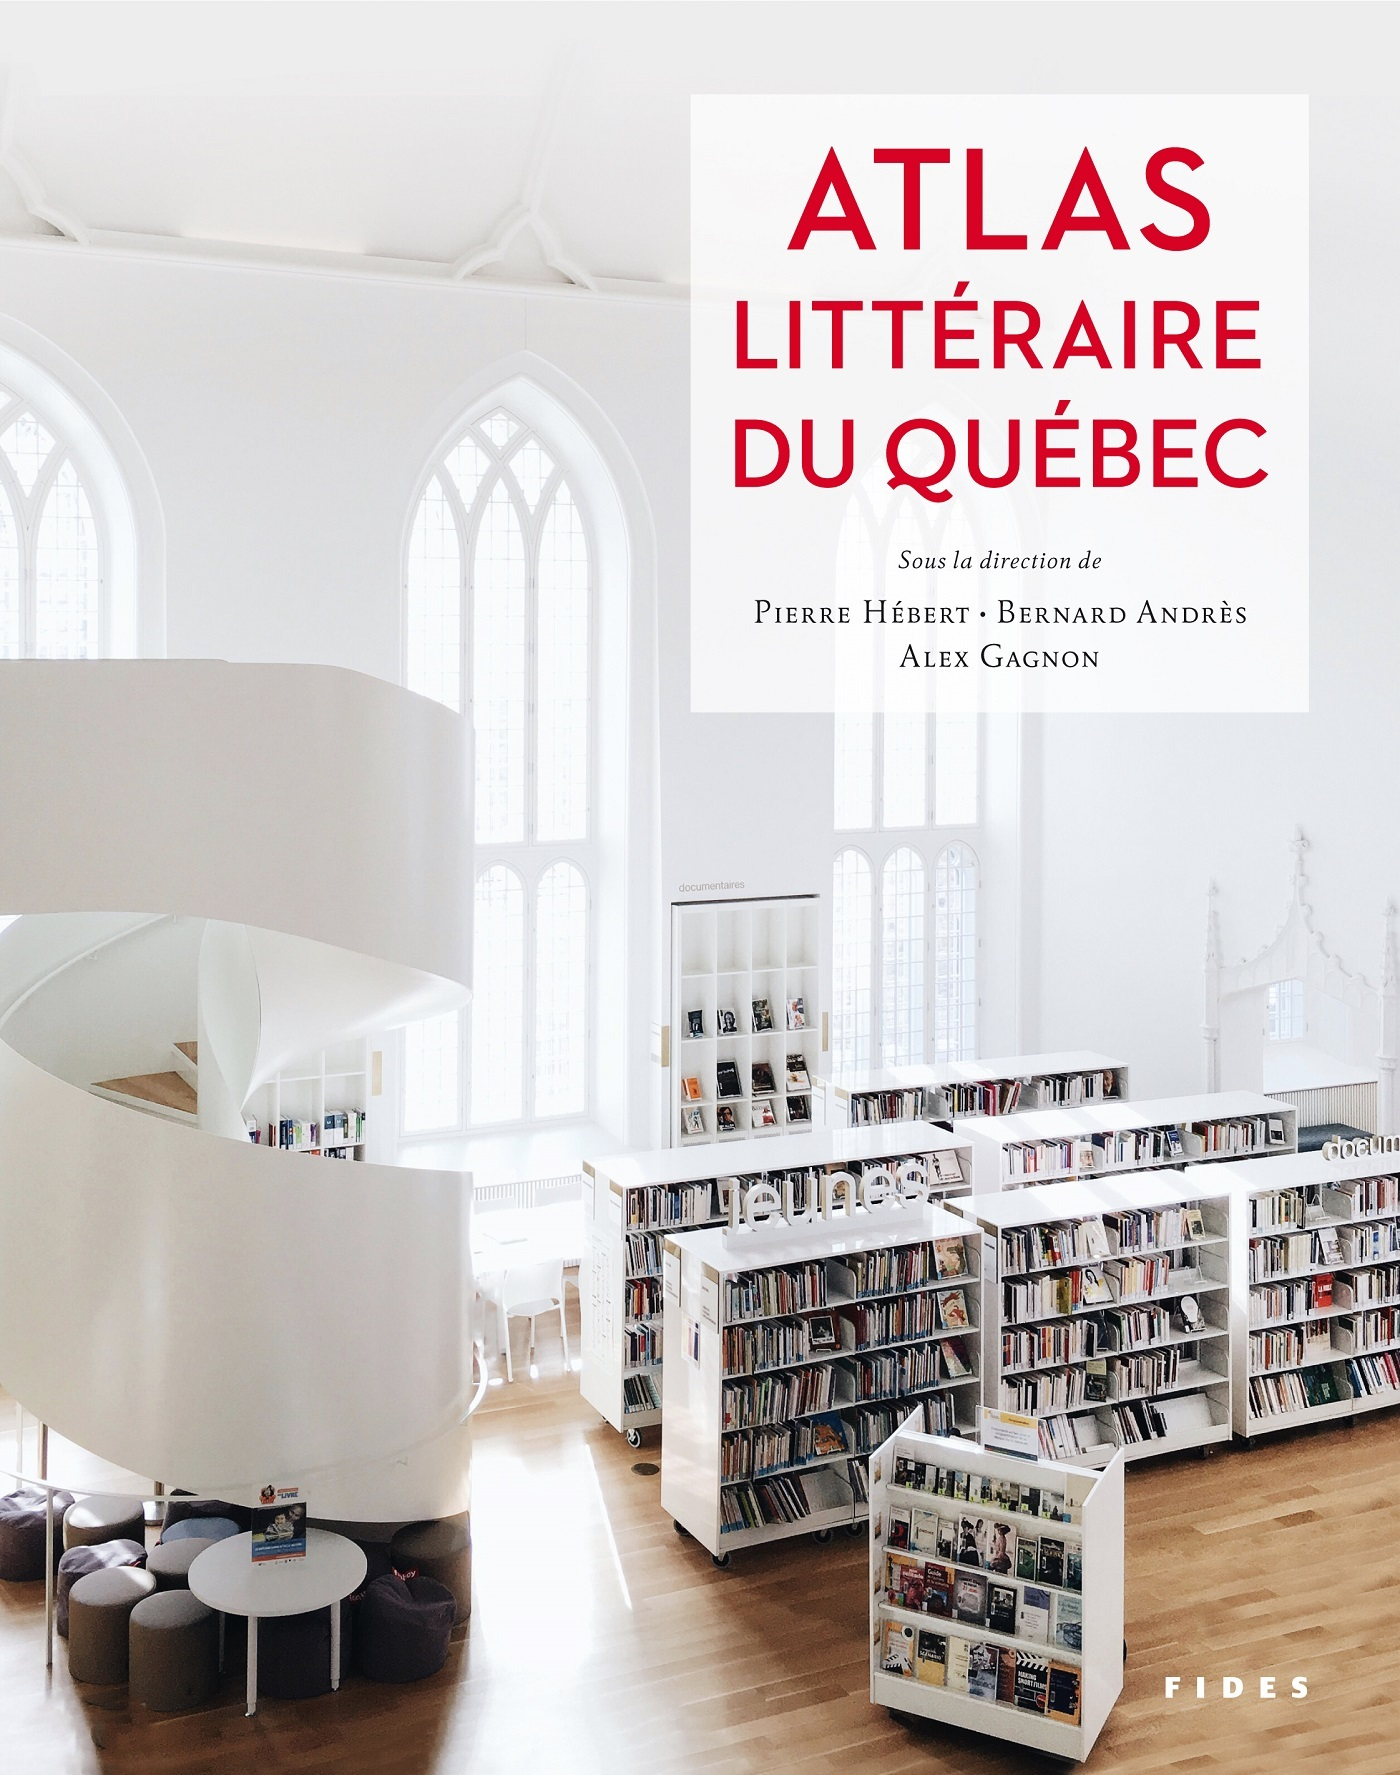 ATLAS LITTERAIRE DU QUEBEC